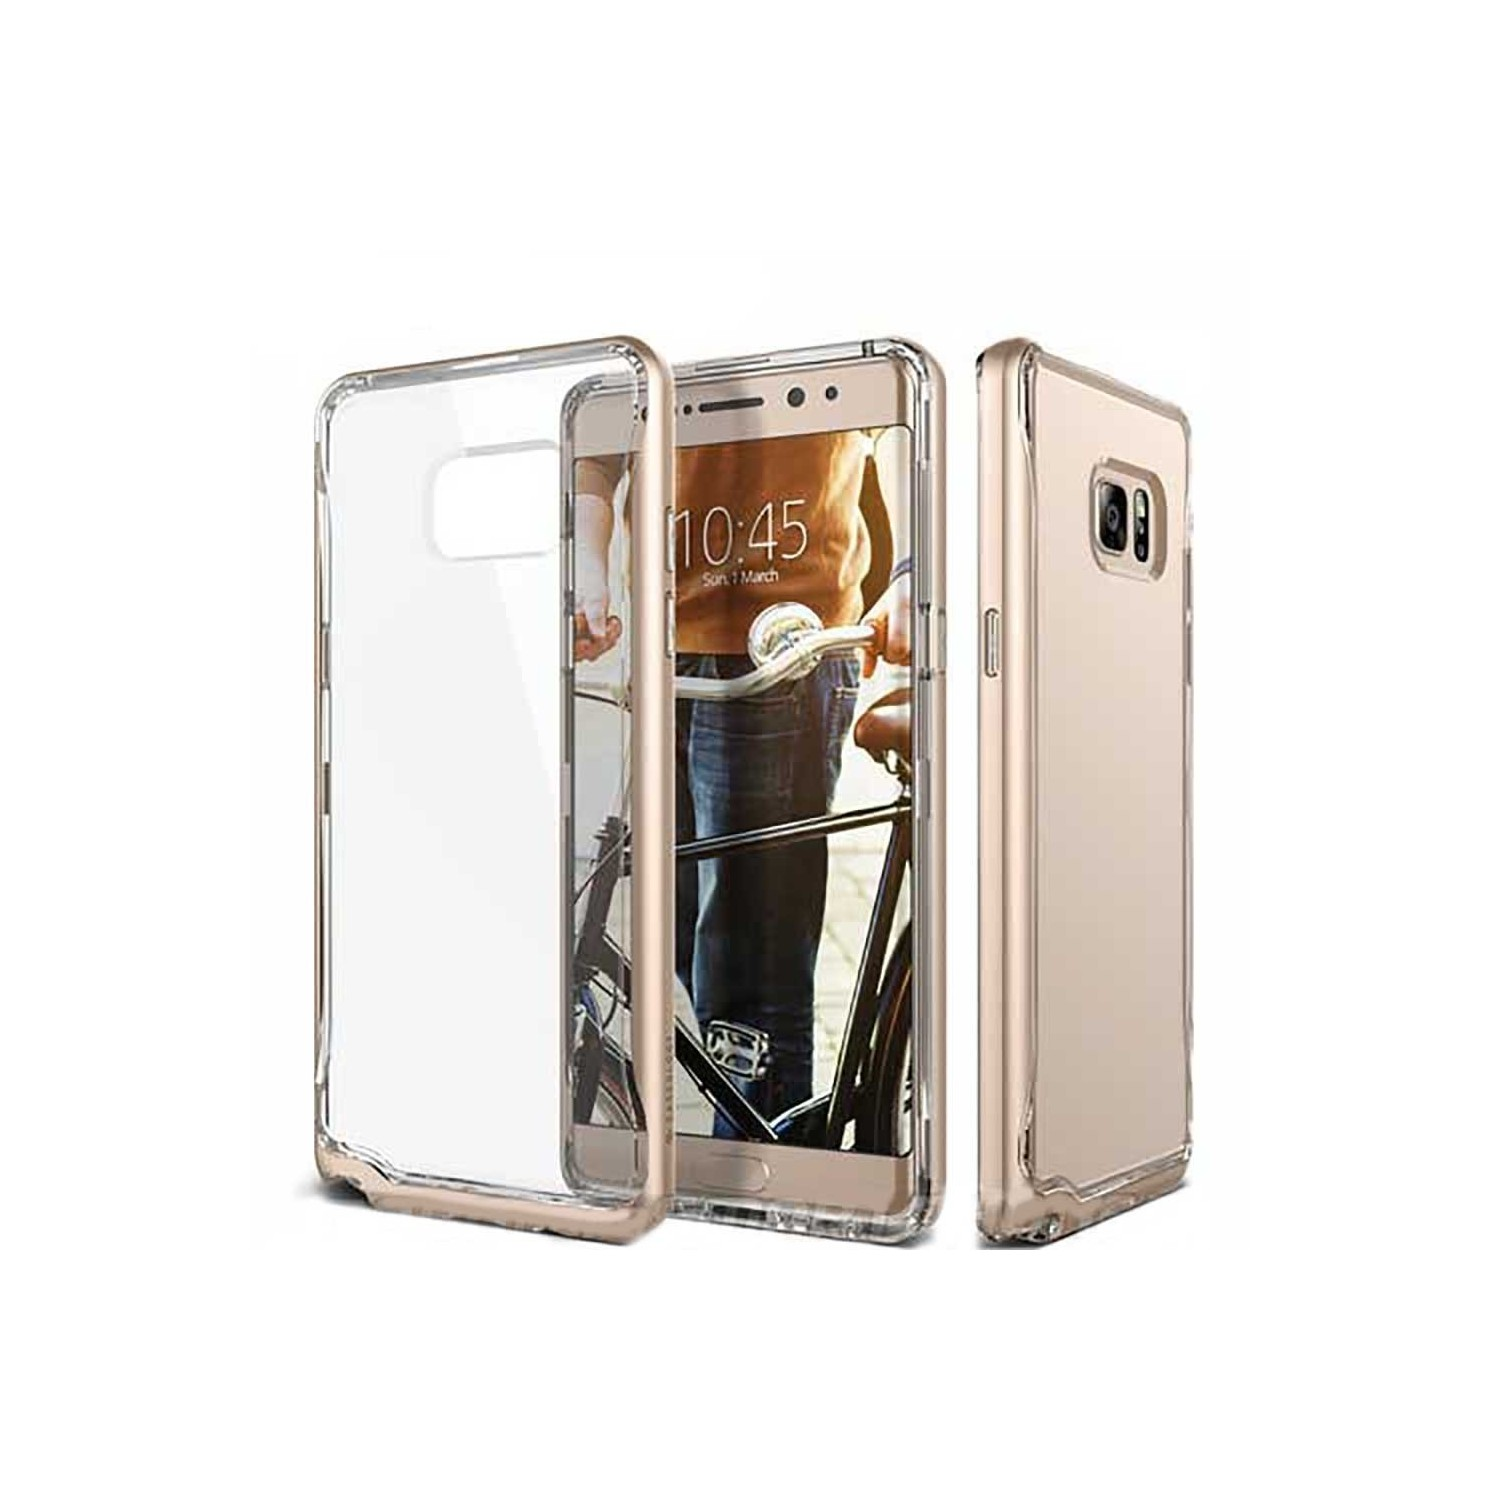 Case - CASEOLOGY Samsung Note 7 - Skyfall - Clear Gold